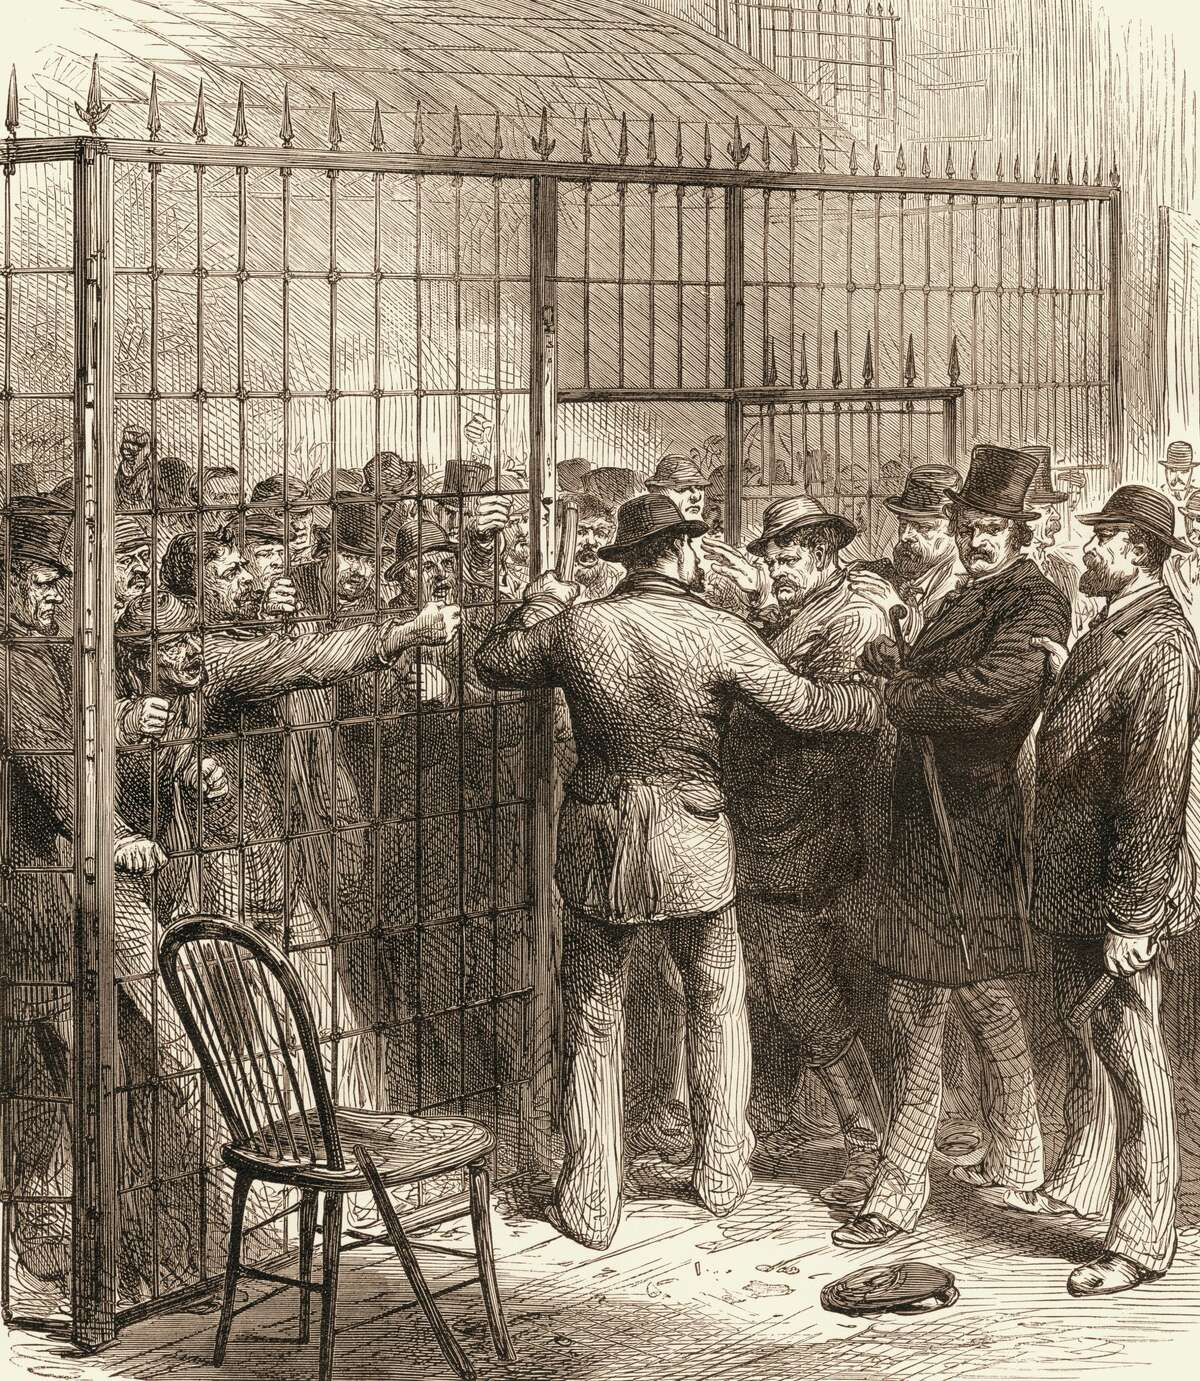 In custody at the United States Circuit Court, a crowd of men accused of voter fraud during the presidential election between Rutherford B. Hayes and Samuel J. Tilden argue with law officers, New York, November 1876.